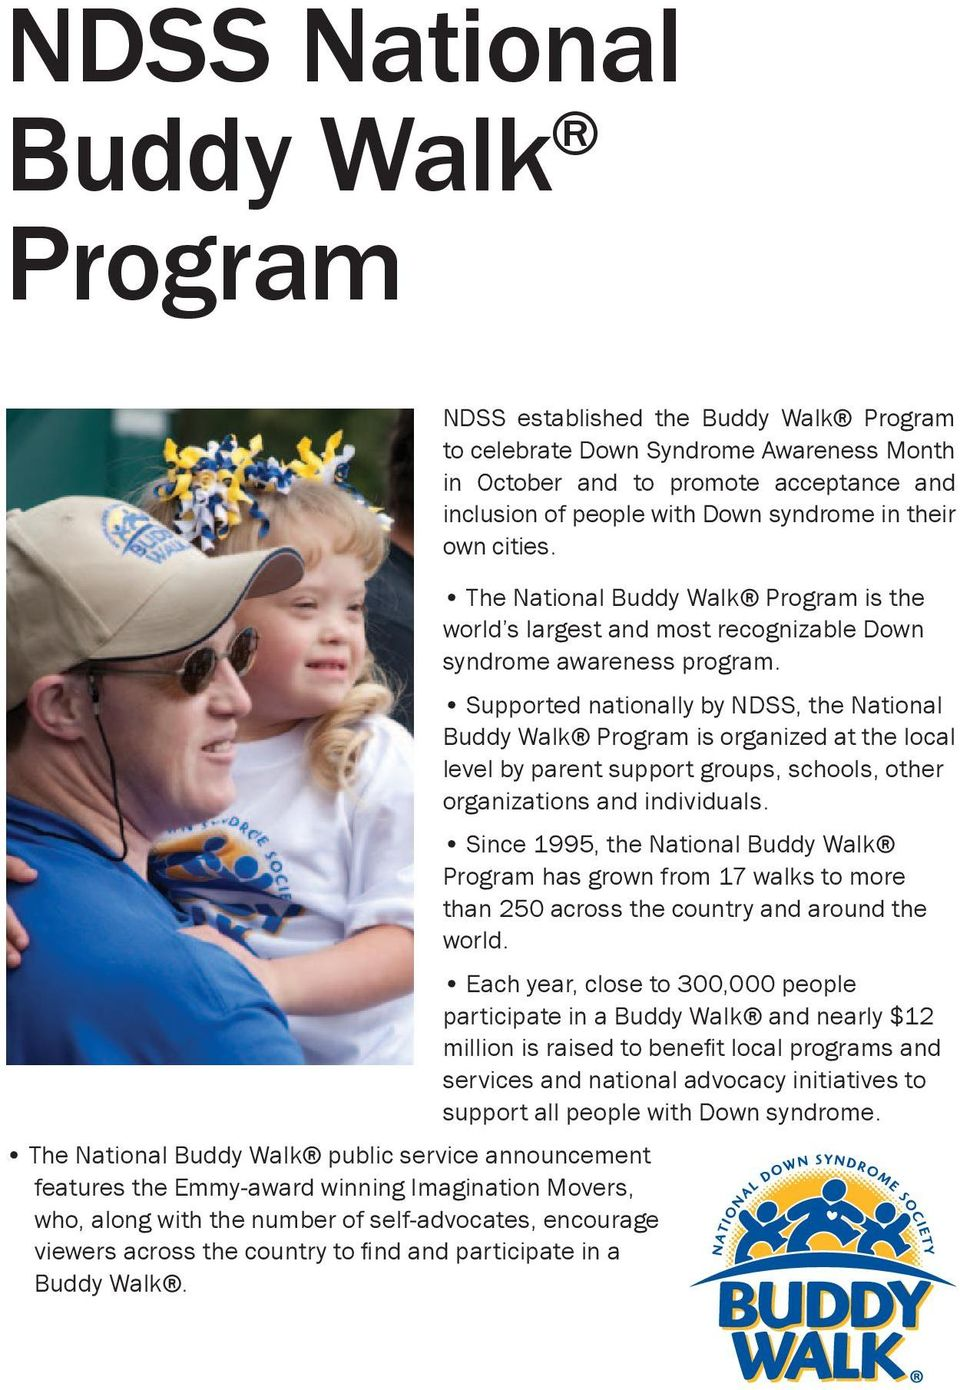 NDSS established the Buddy Walk Program to celebrate Down Syndrome Awareness Month in October and to promote acceptance and inclusion of people with Down syndrome in their own cities.